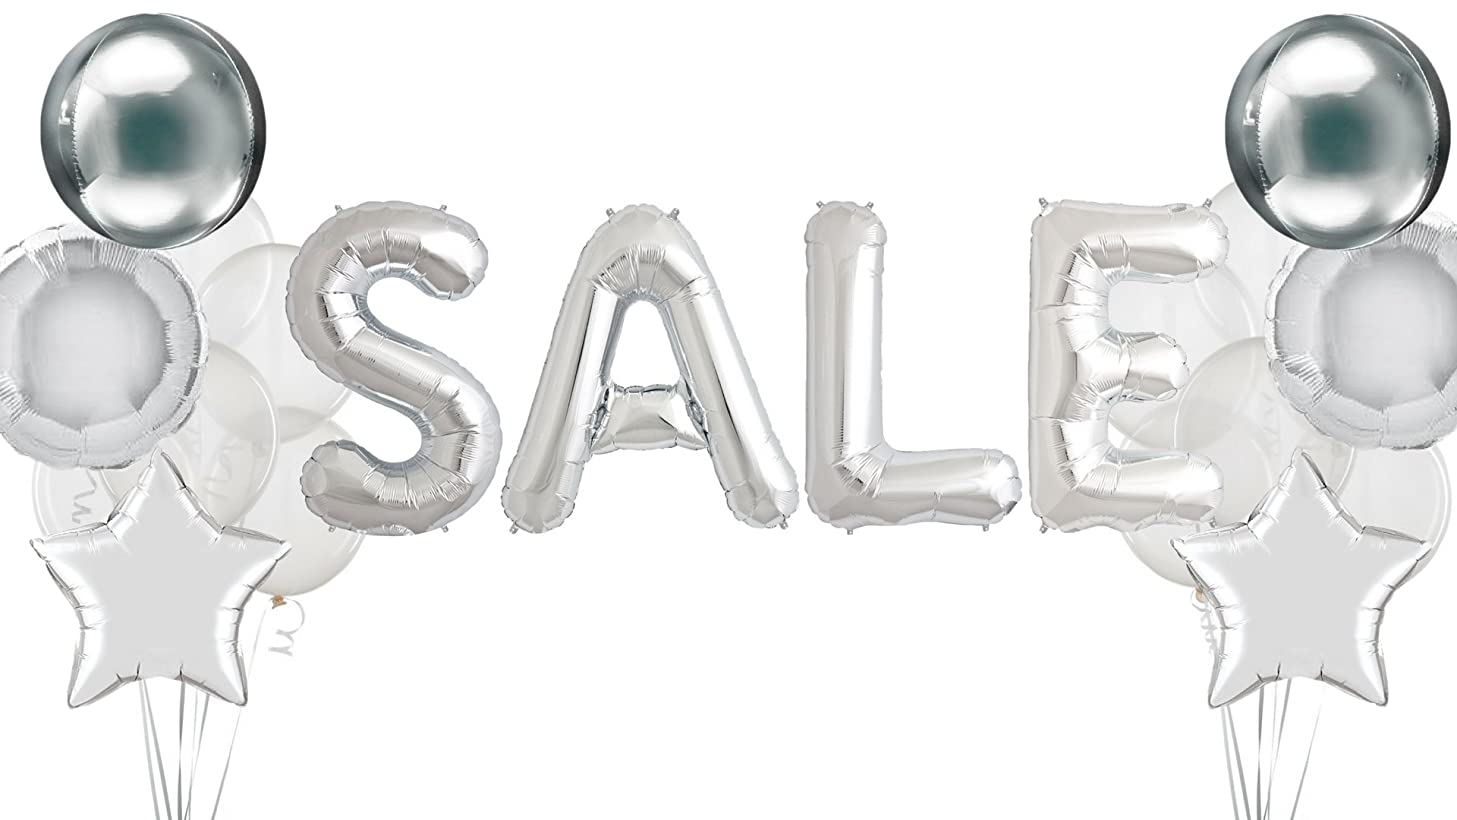 Sale Sign Retail Store Display For Business Signs Advertisement Signage Yard Sales Clearance Giant Letter Silver Balloons Star Orb Round Mylar Clear Glitter Confetti Mylar Foil Promotional Promotion